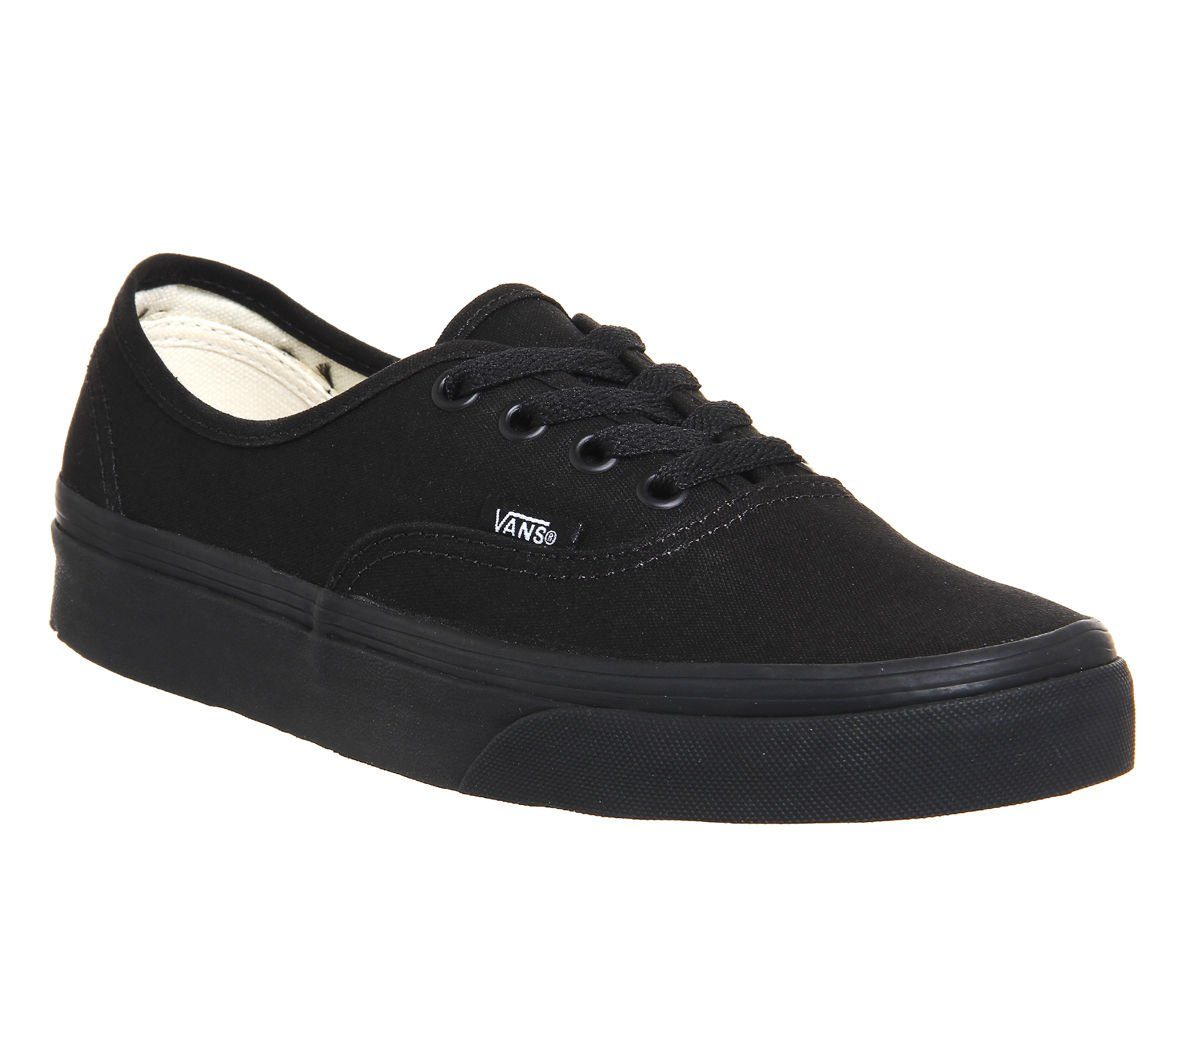 Vans Authentic Unisex Skate Trainers Shoes B00ML0ZB9W 8.5 M US Women / 7 M US Men|Black/Black